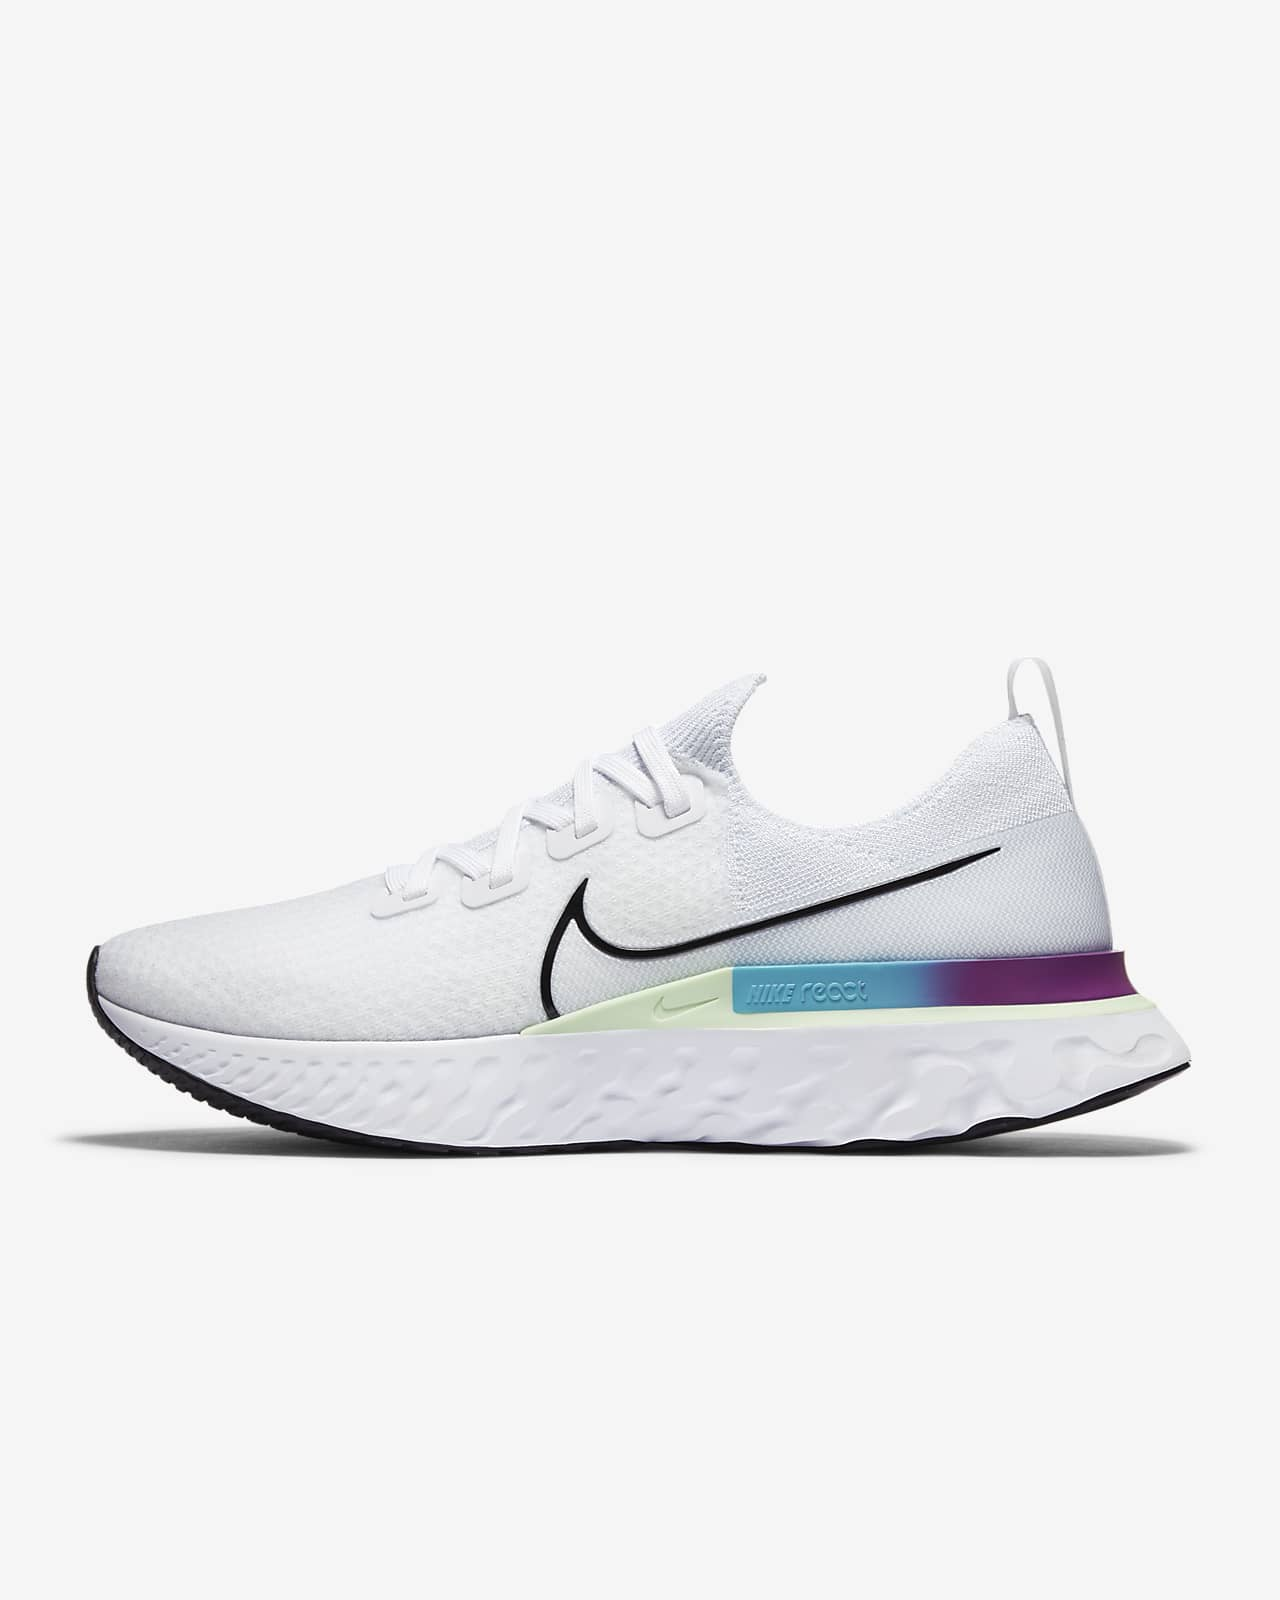 ajustar celos Asumir  Nike React Infinity Run Flyknit Men's Running Shoe. Nike GB